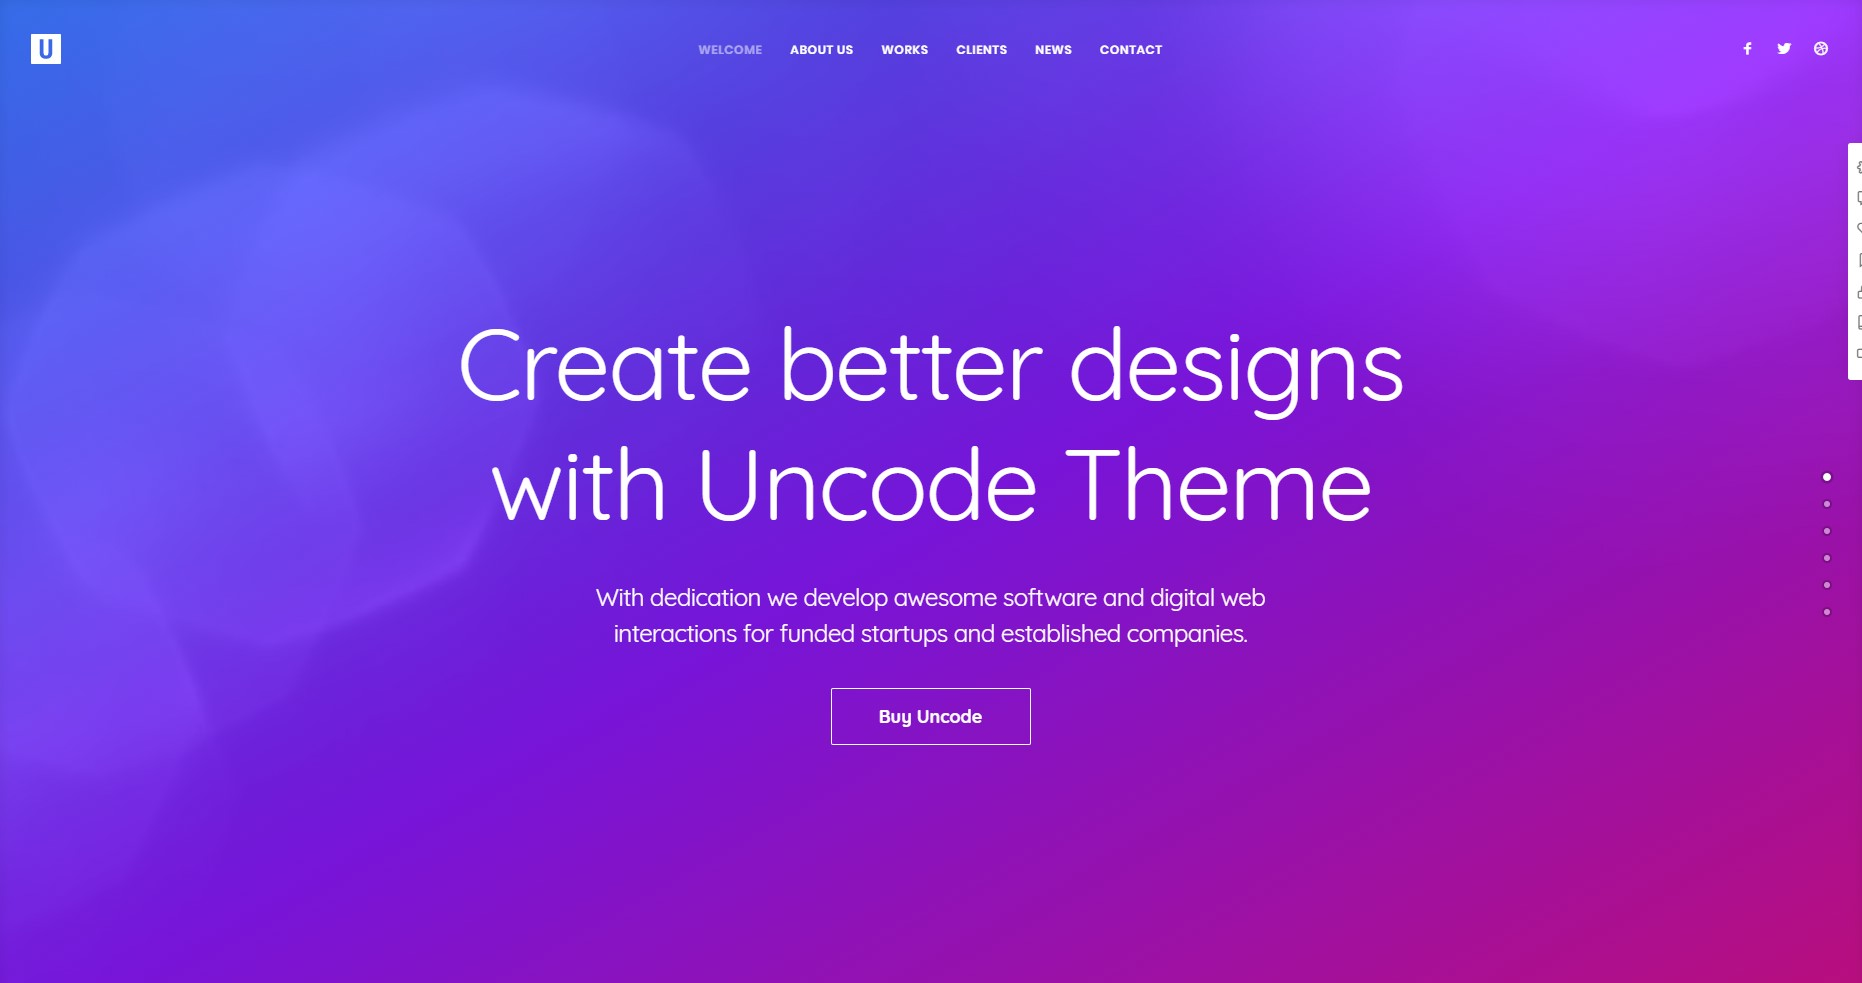 Uncode minimalist WordPress Theme